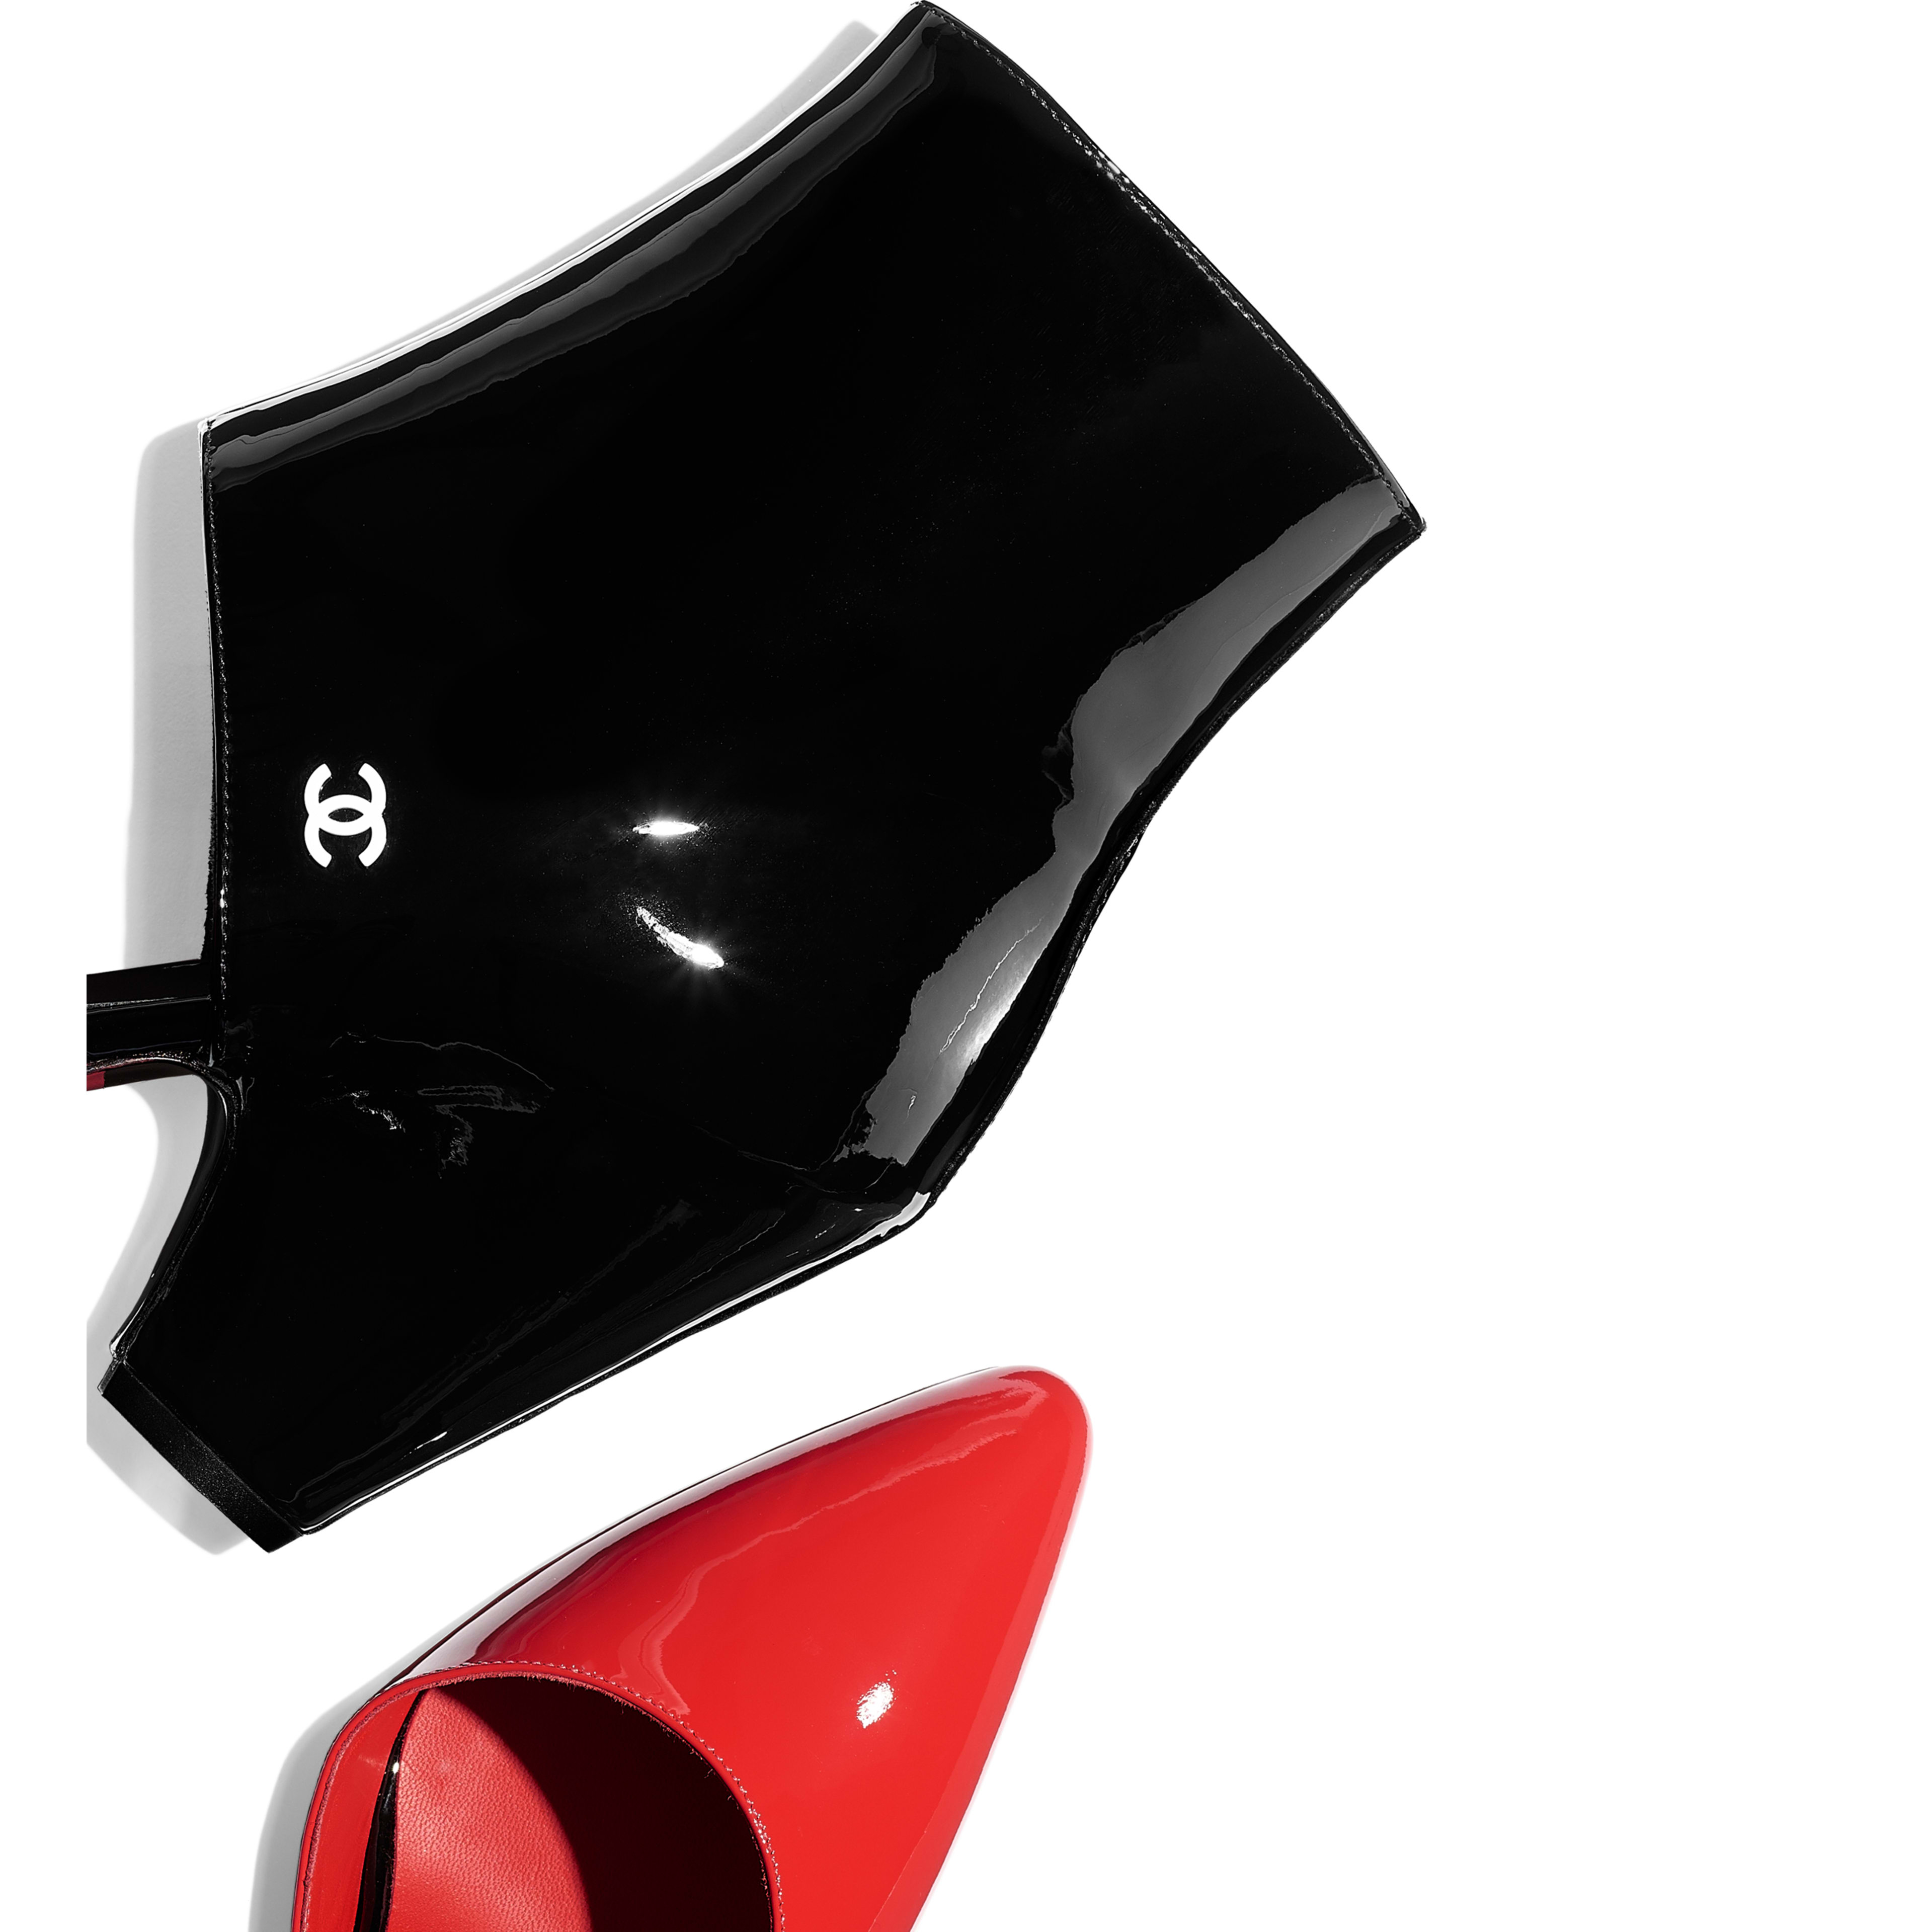 Open Ankle Boots - Red & Black - Patent Calfskin - Extra view - see full sized version